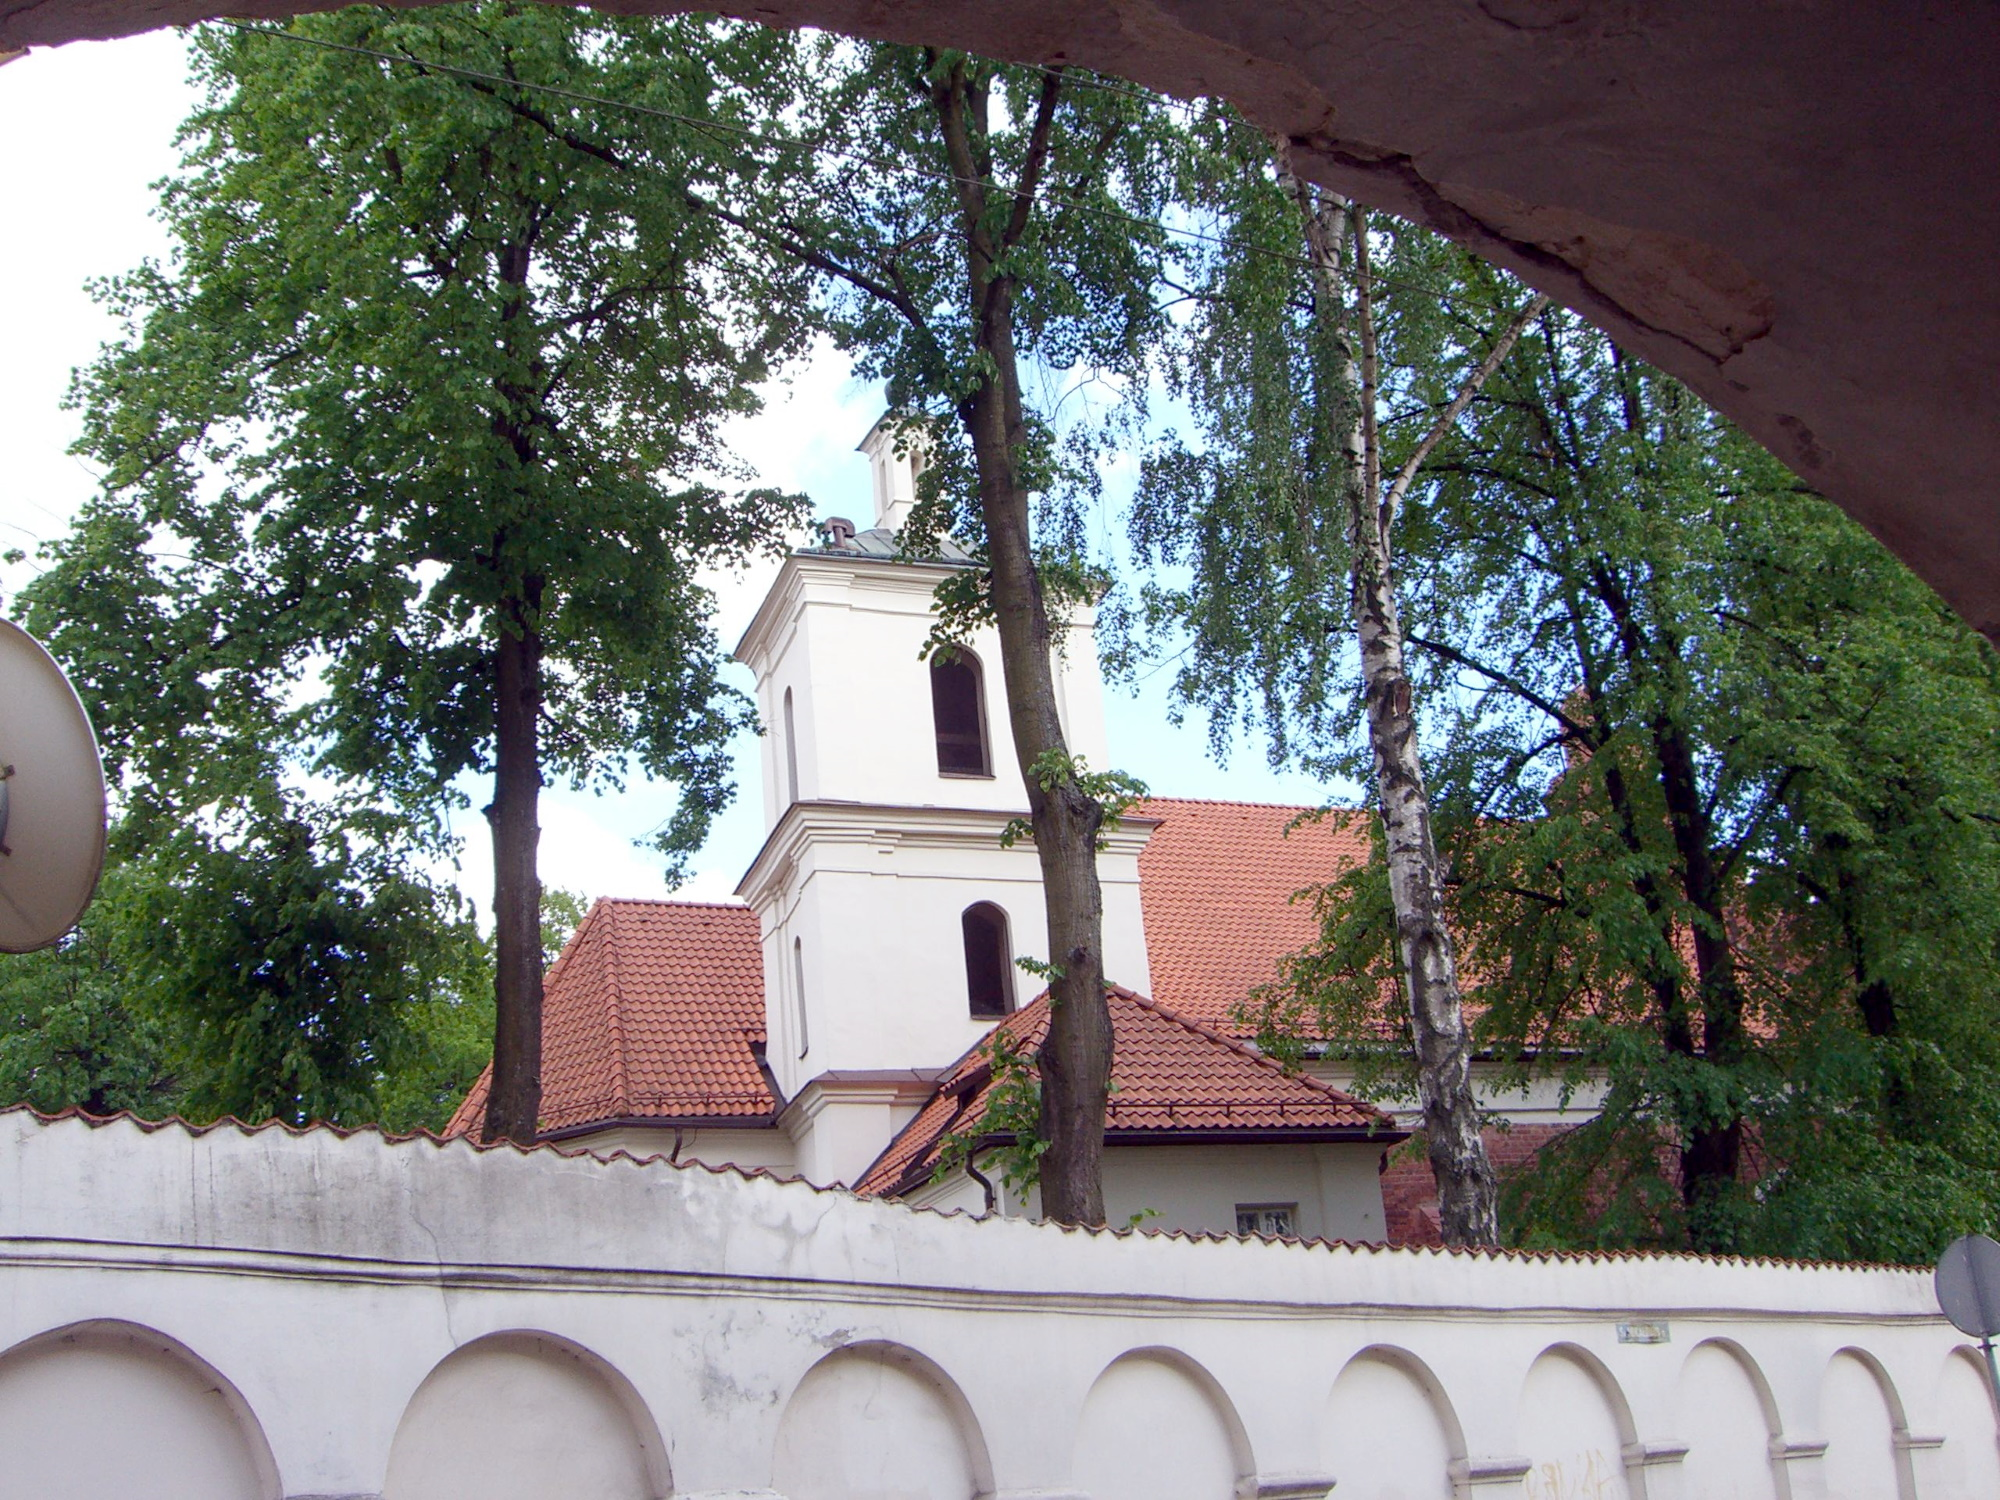 A church wall with arches in it